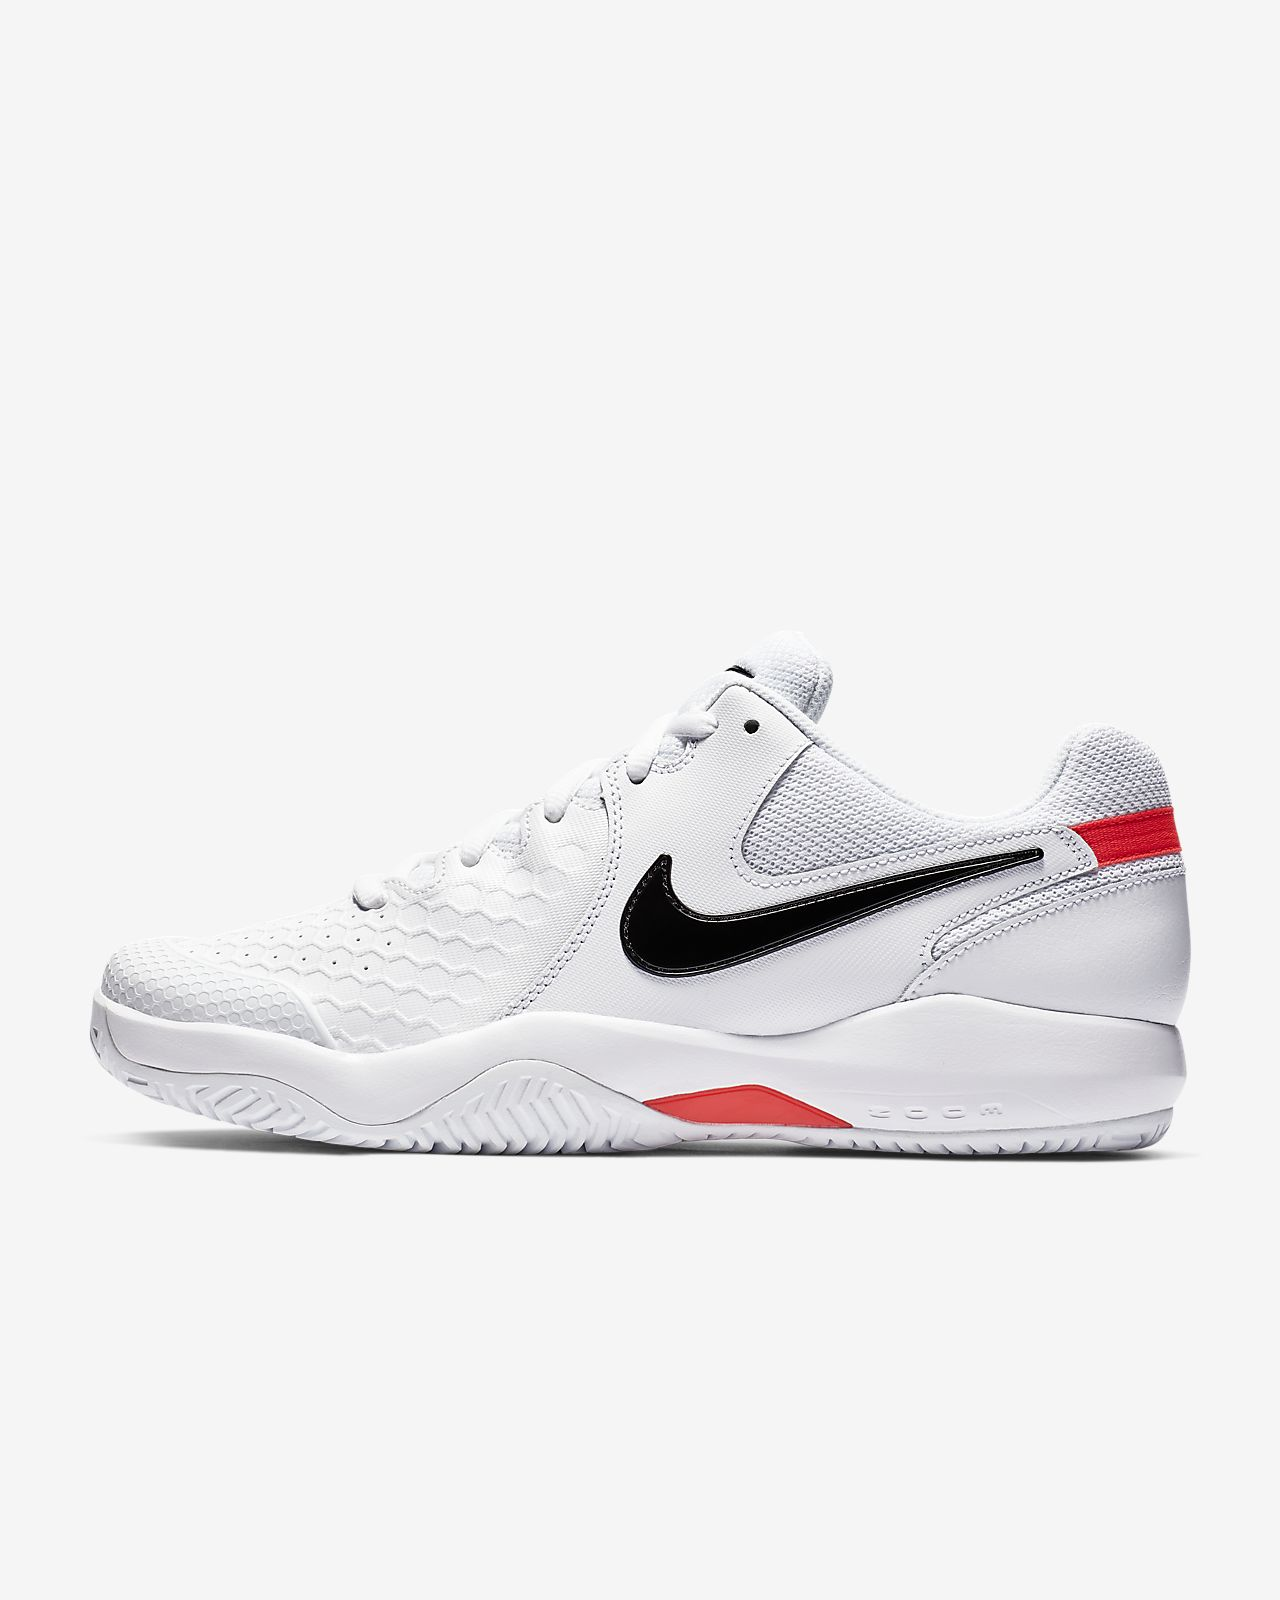 1cfdc2379f42 NikeCourt Air Zoom Resistance Men s Hard Court Tennis Shoe. Nike.com